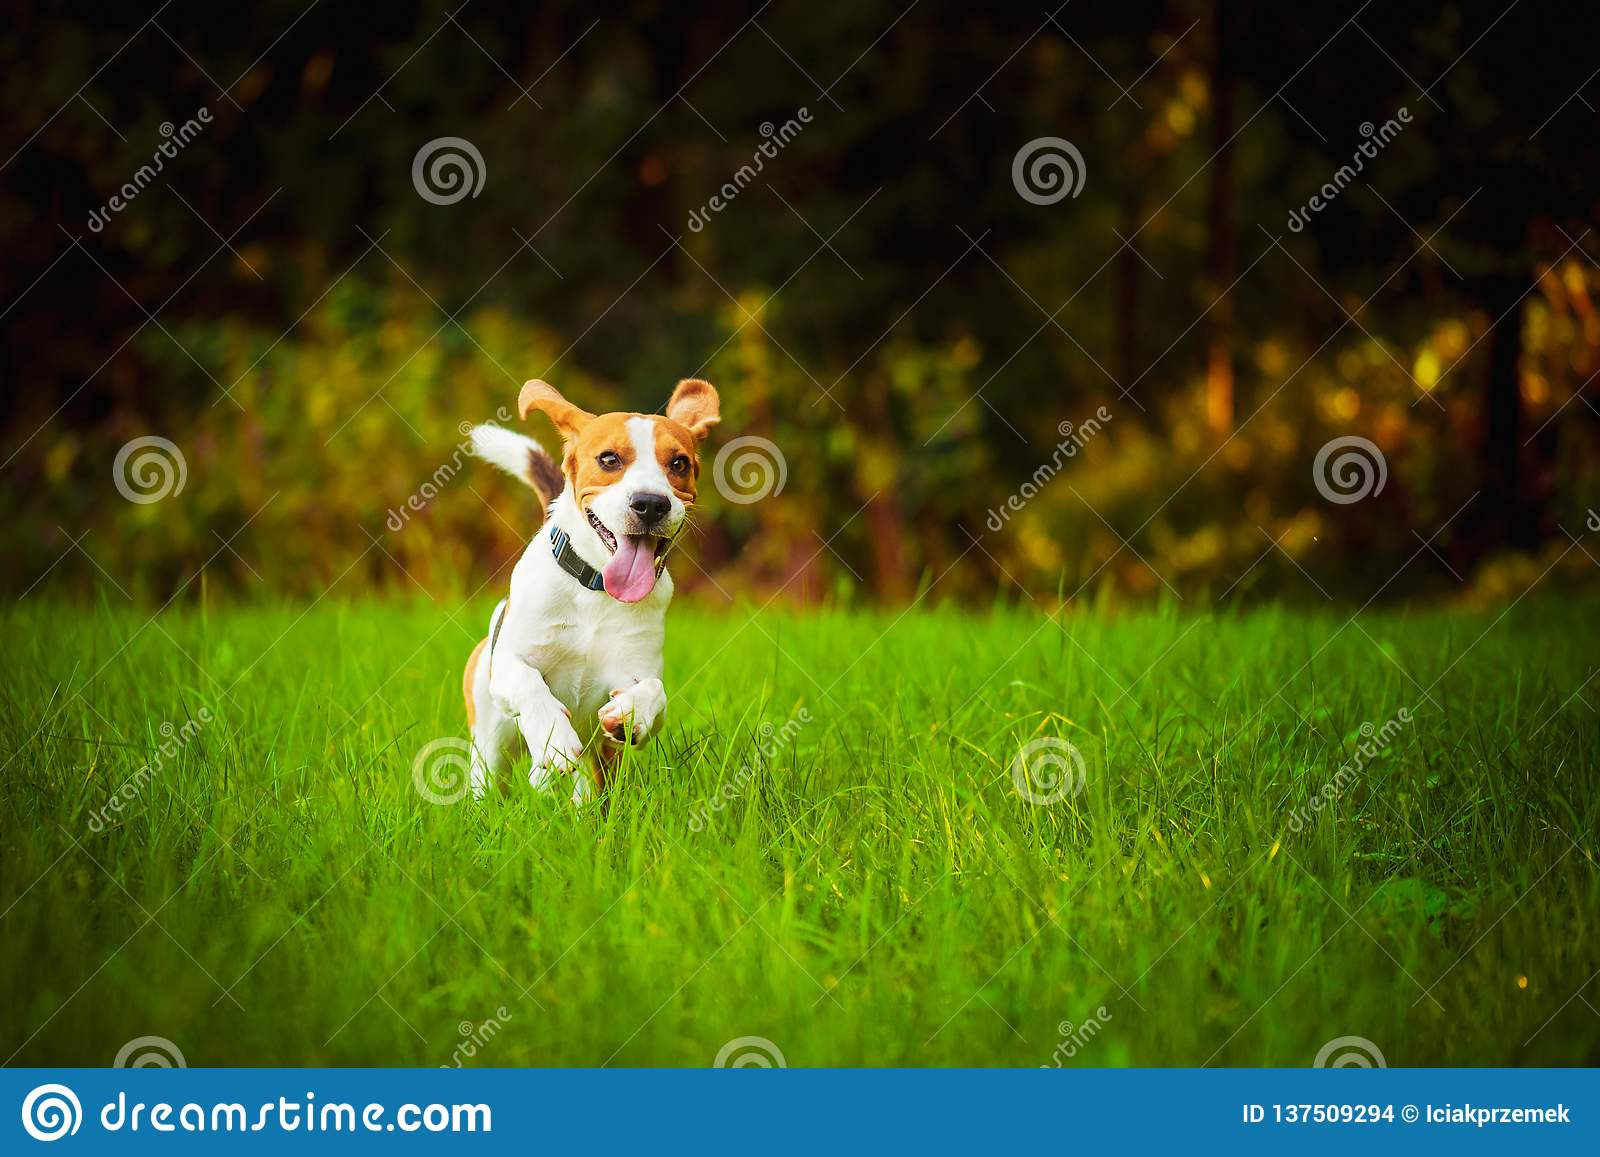 Dog having fun running towards camera with tongue out towards camera in summer day on meadow field